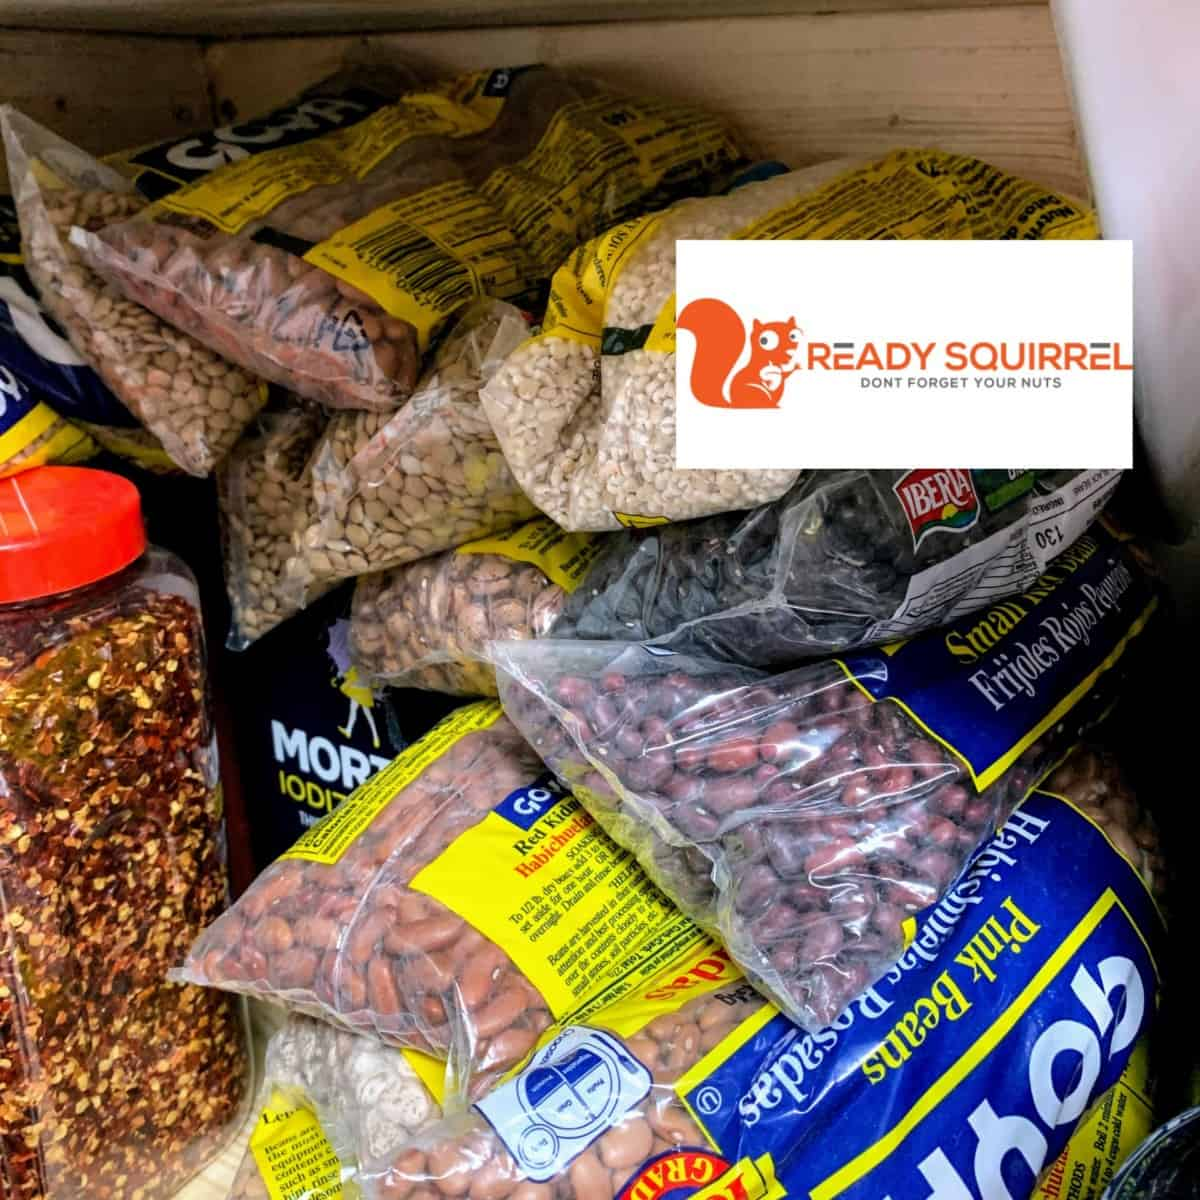 Dried vs. Canned Beans For Prepping: Why I Store Mostly Dried Beans